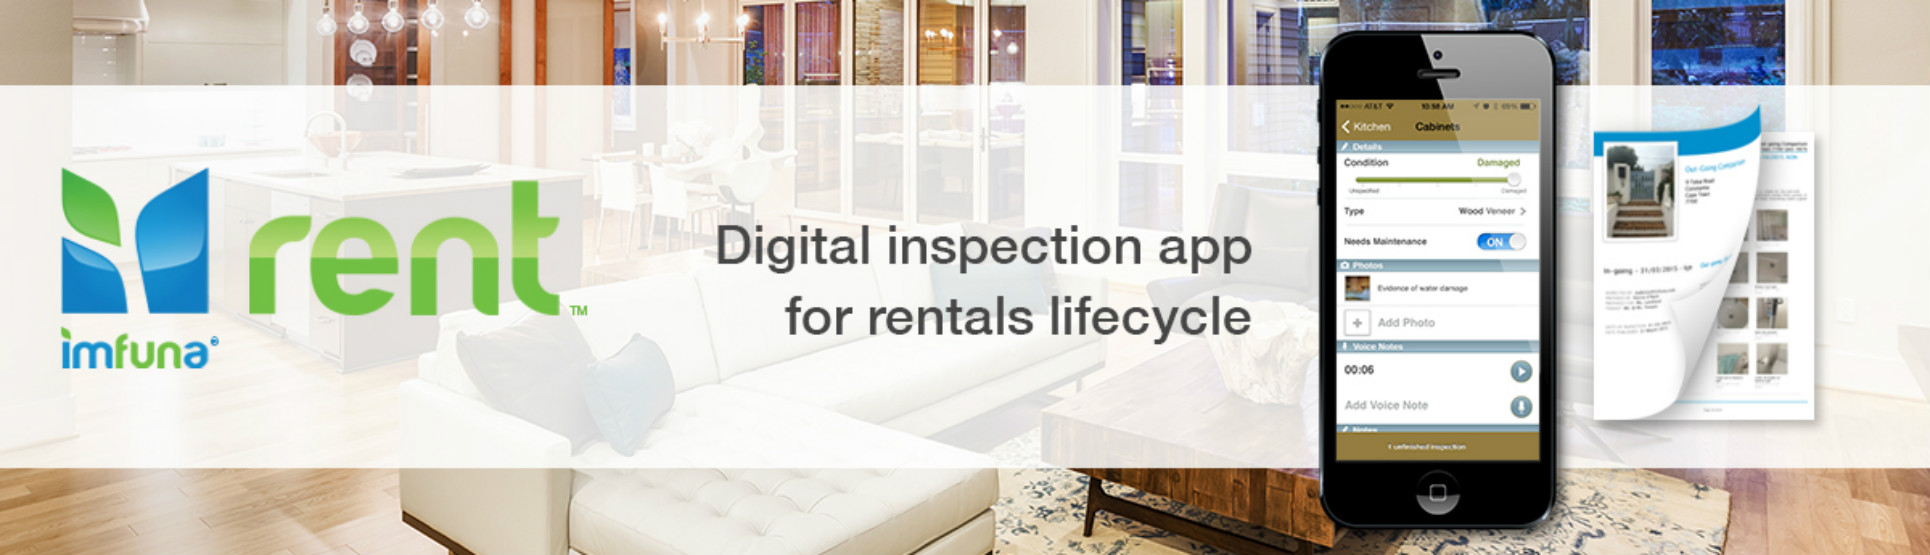 Imfuna Rent is a mobile property inspection app and software for digital property management rentals